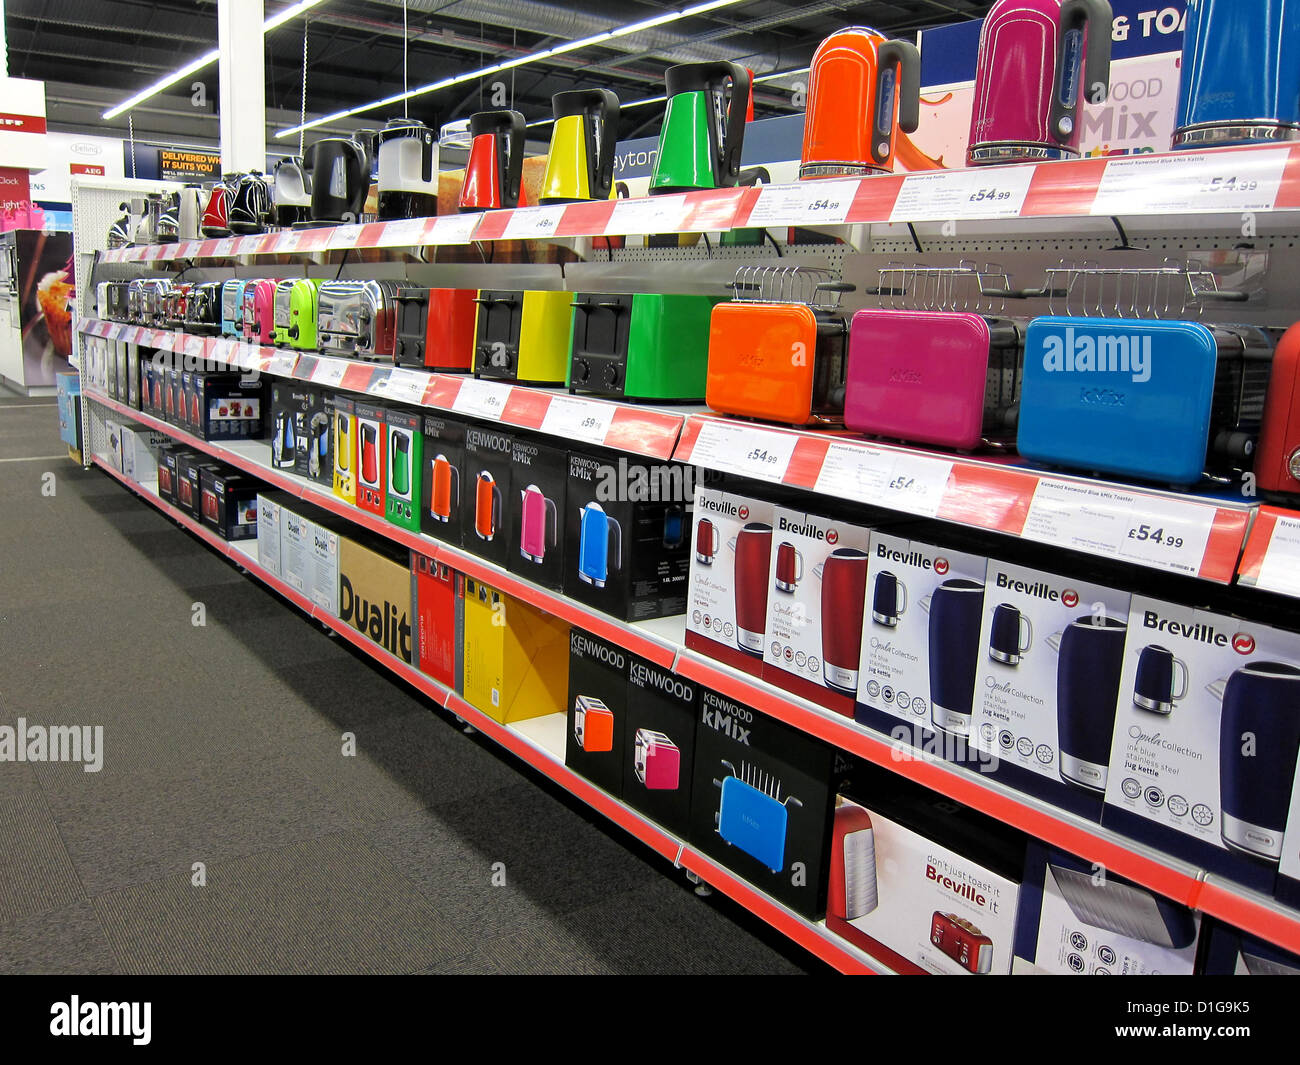 Bright Kitchen Appliances On The Shelves Of An Electrical Store Stock Photo Alamy